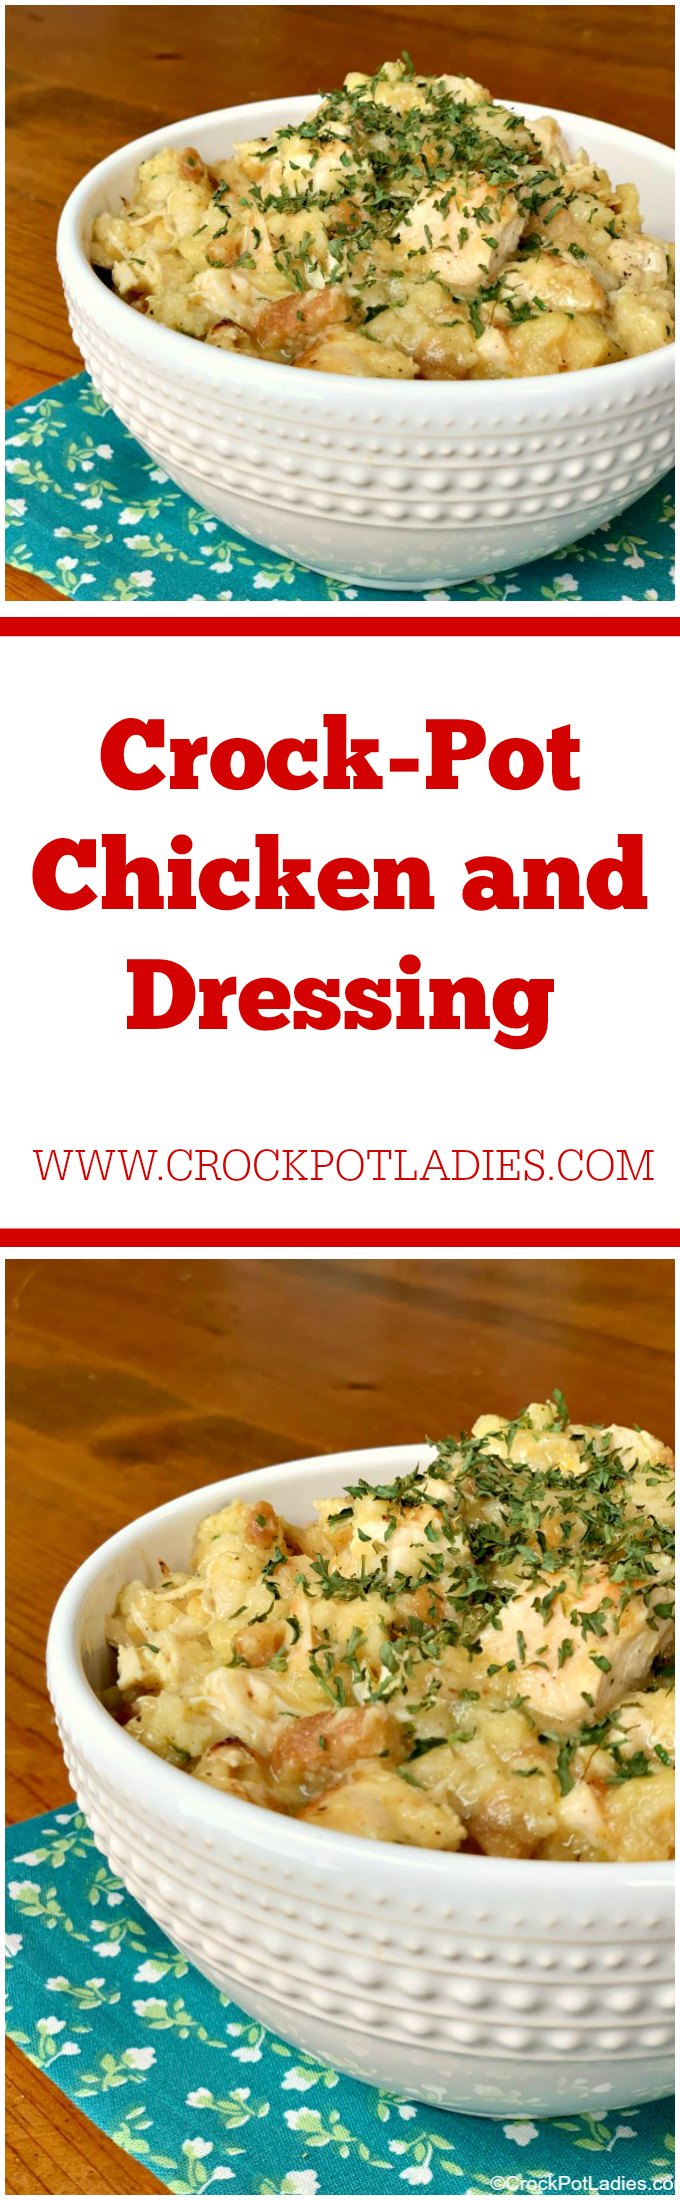 Crock-Pot Chicken and Dressing